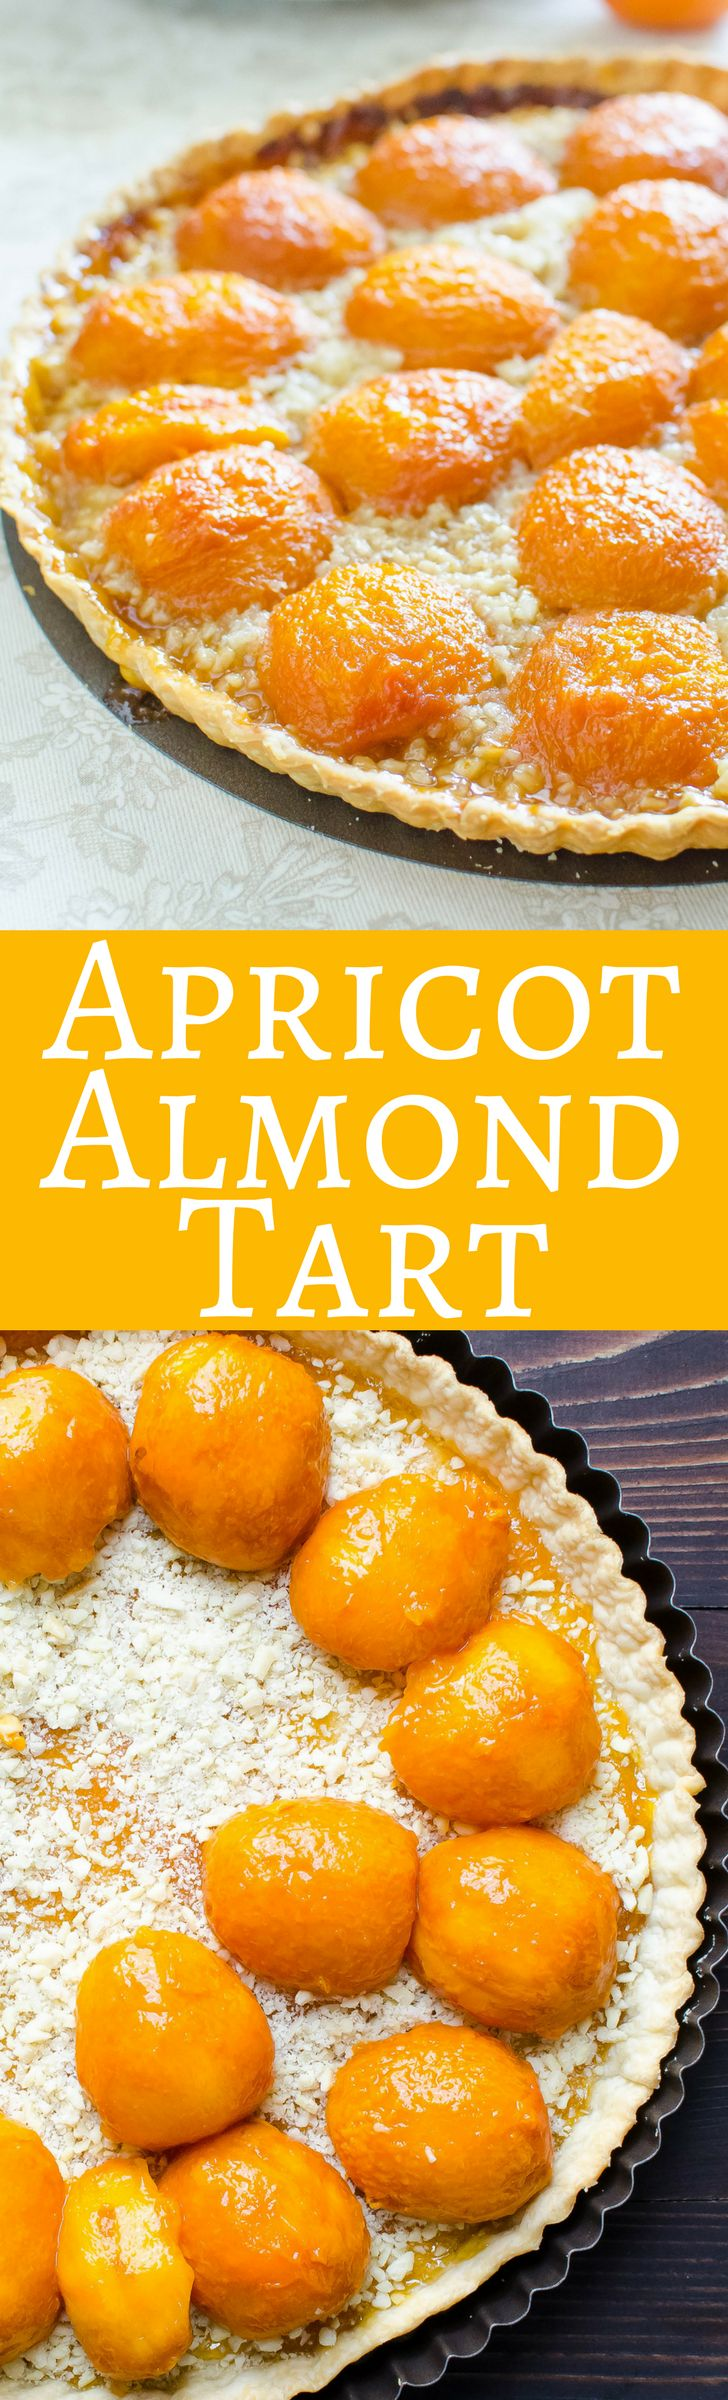 This simple apricot tart recipe  is easy to make and great for entertaining!  Using fresh apricots, almonds and store-bought pastry dough!